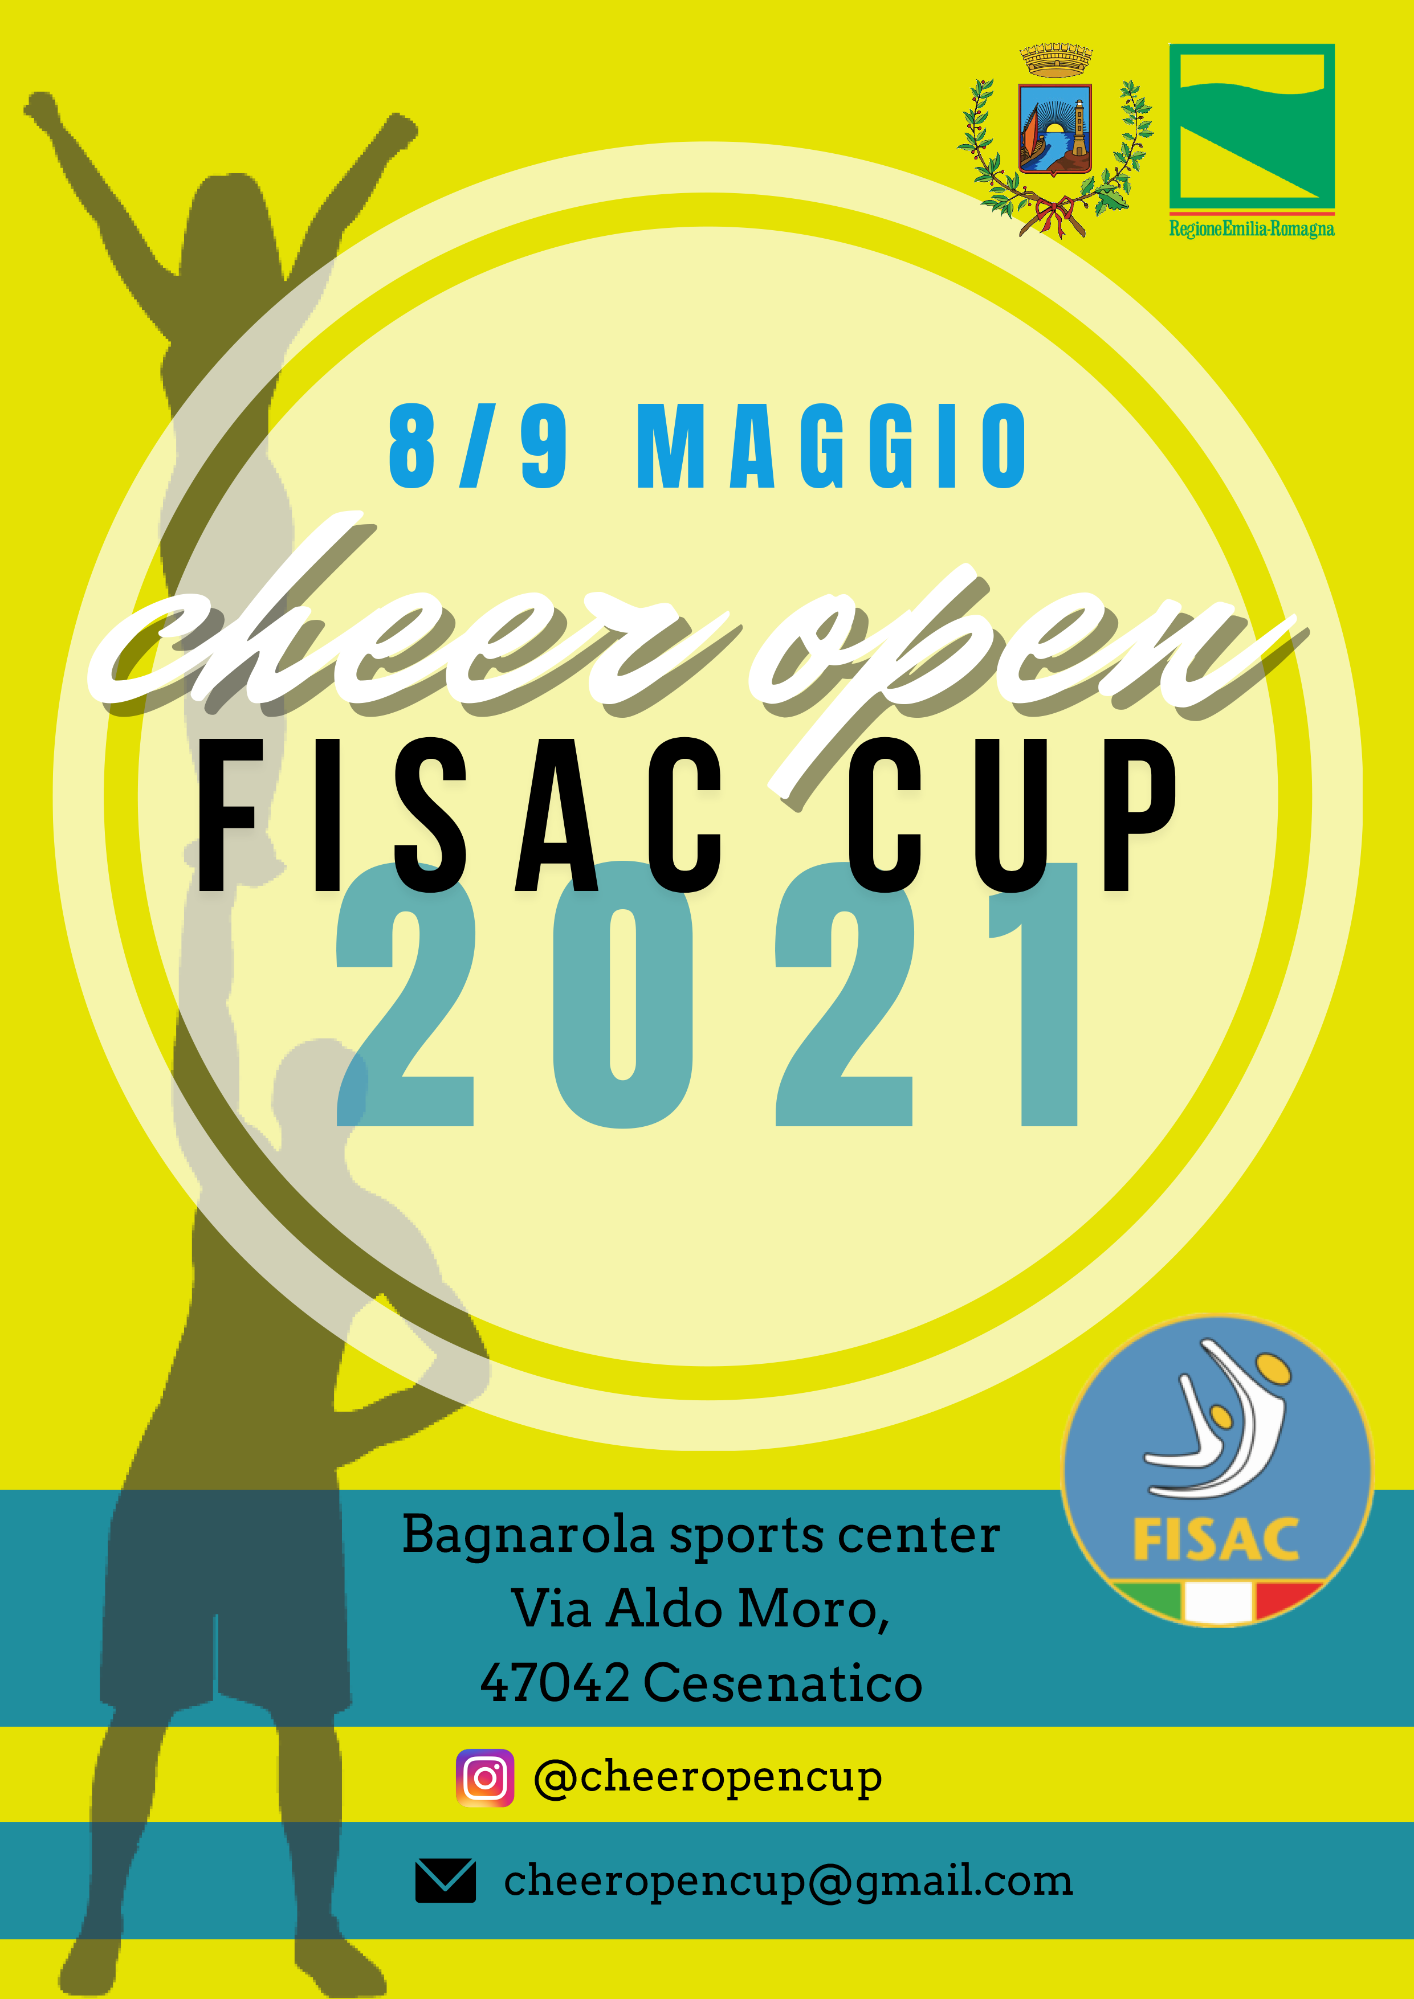 Cheer Open Fisac Cup 2021